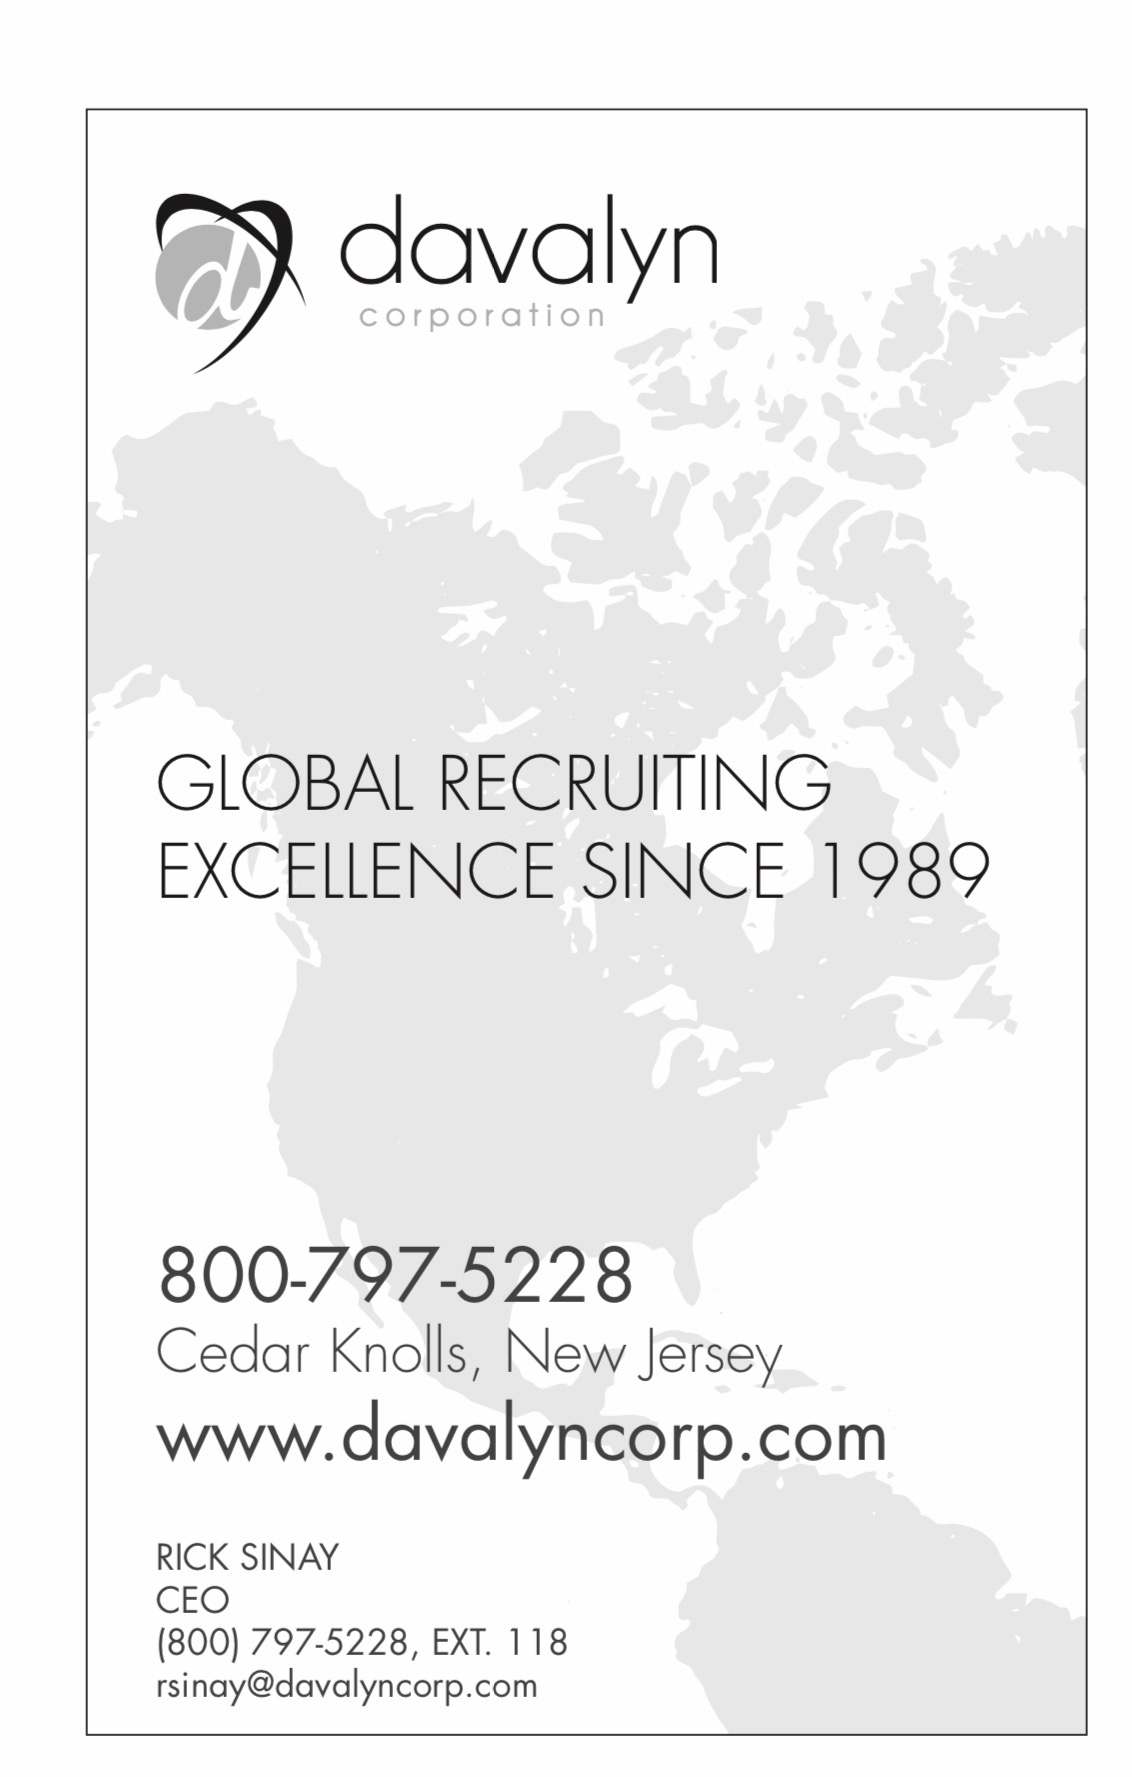 Brouchure ad for Davalyn corporation